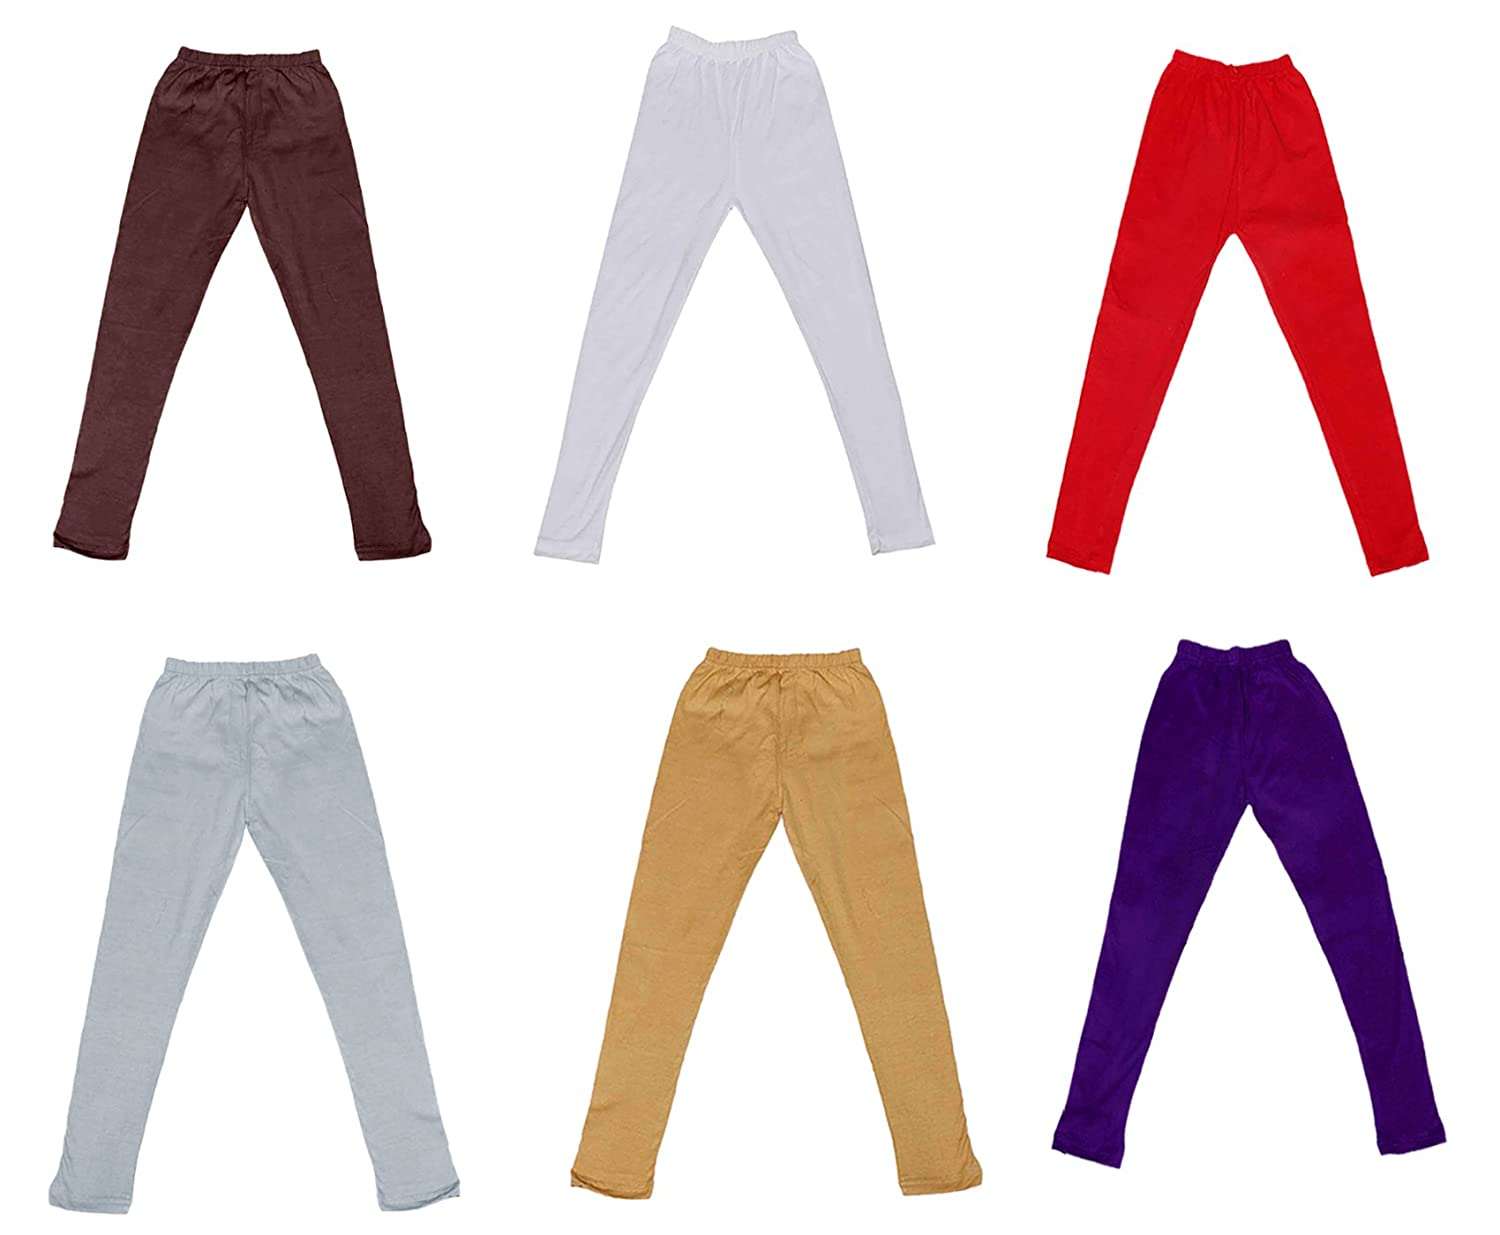 Pack of 6 Indistar Cotton Super Soft Solid Multicolor Leggings for Girls